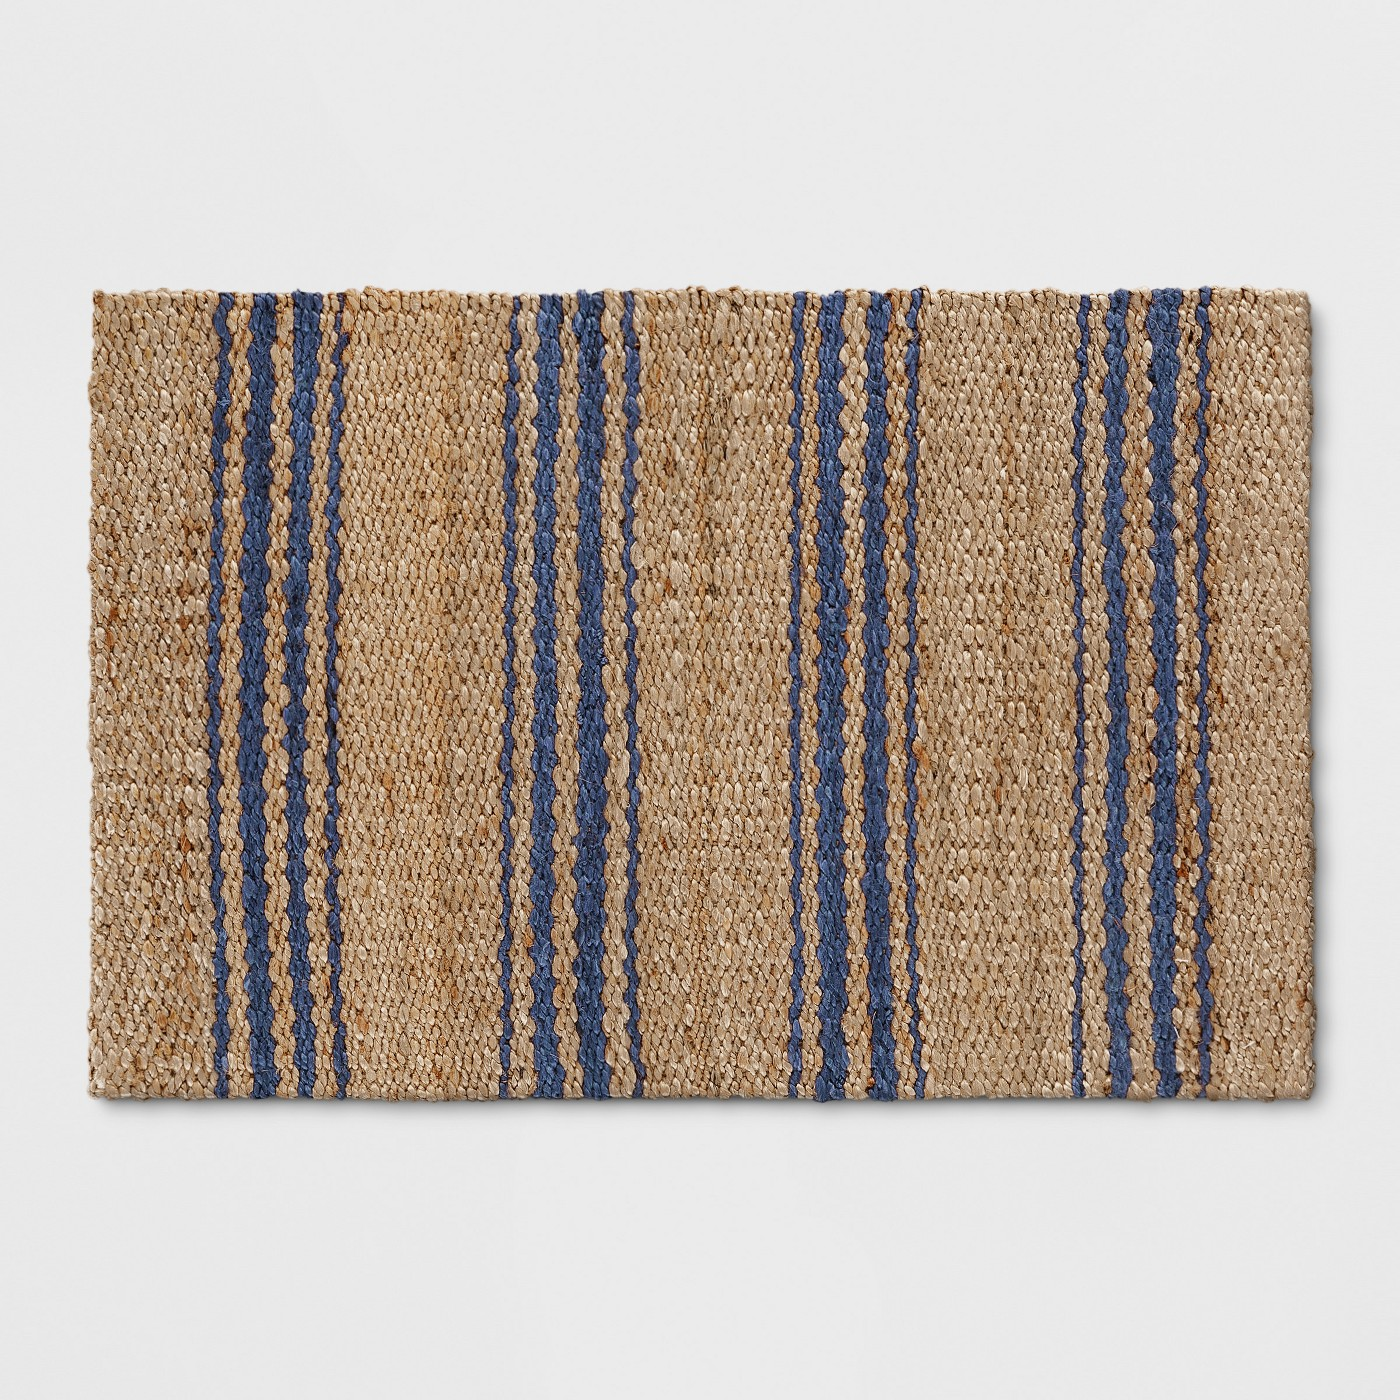 Navy Stripe Jute Woven Accent Rug 2'X3' - Threshold™ - image 1 of 3